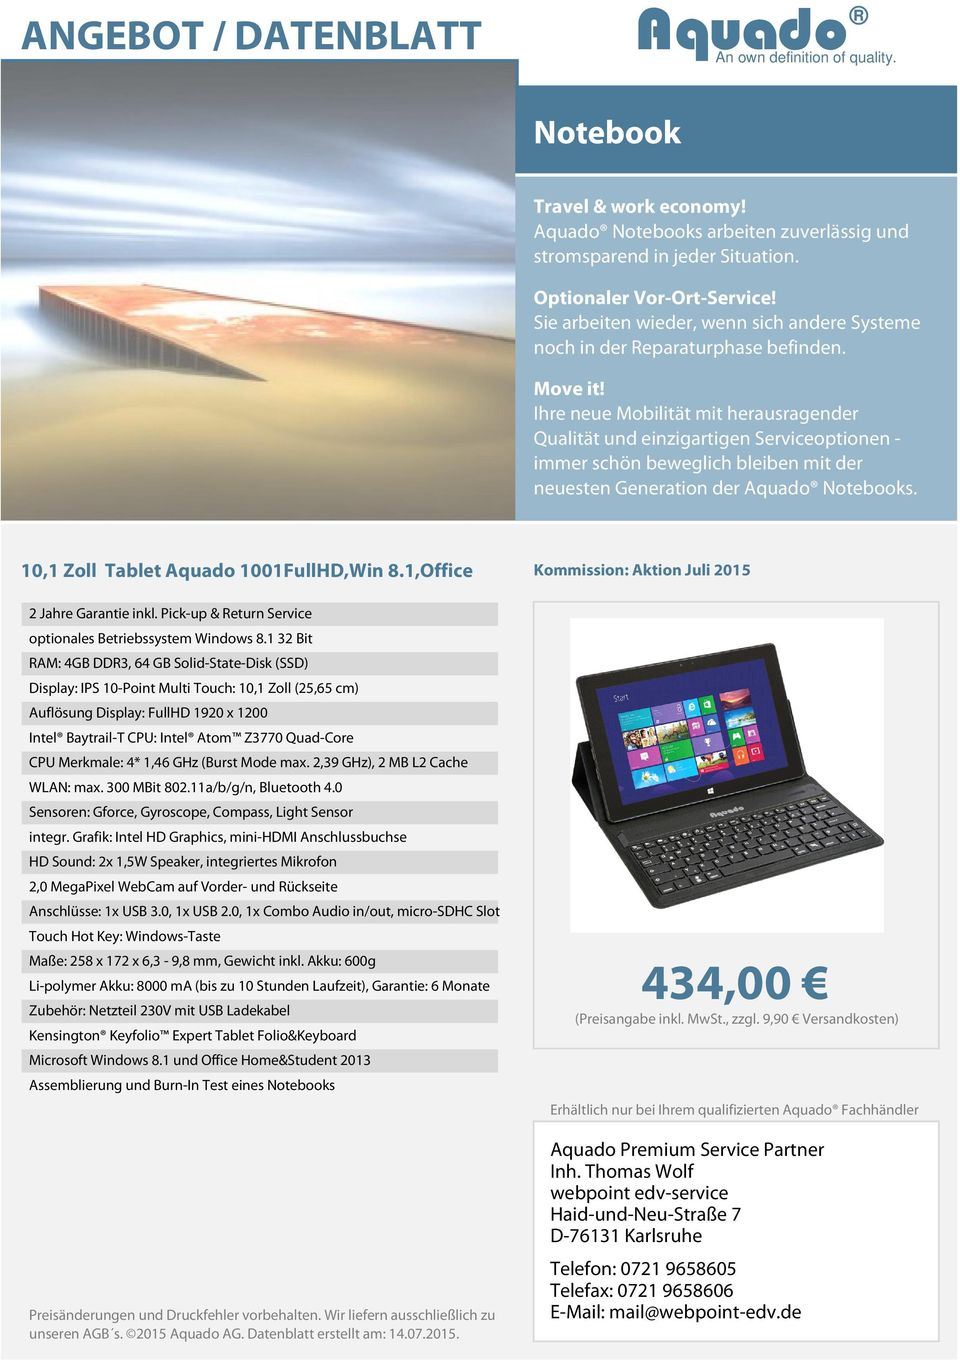 Kommission: Aktion Juli 2015 2 Jahre Garantie inkl. Pick-up & Return Service optionales Betriebssystem Windows 8.